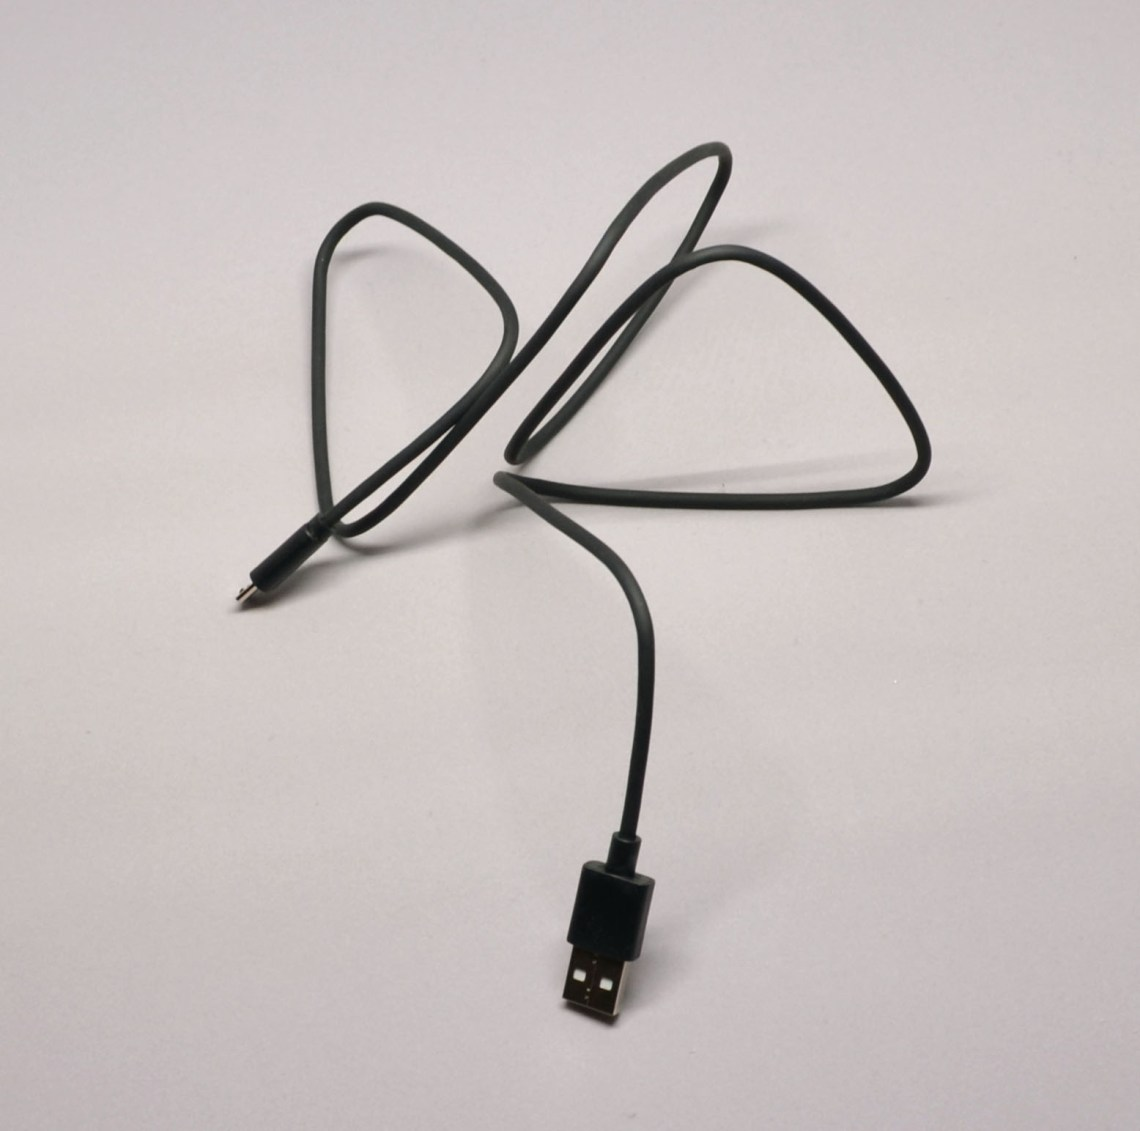 A cable freed from the package.